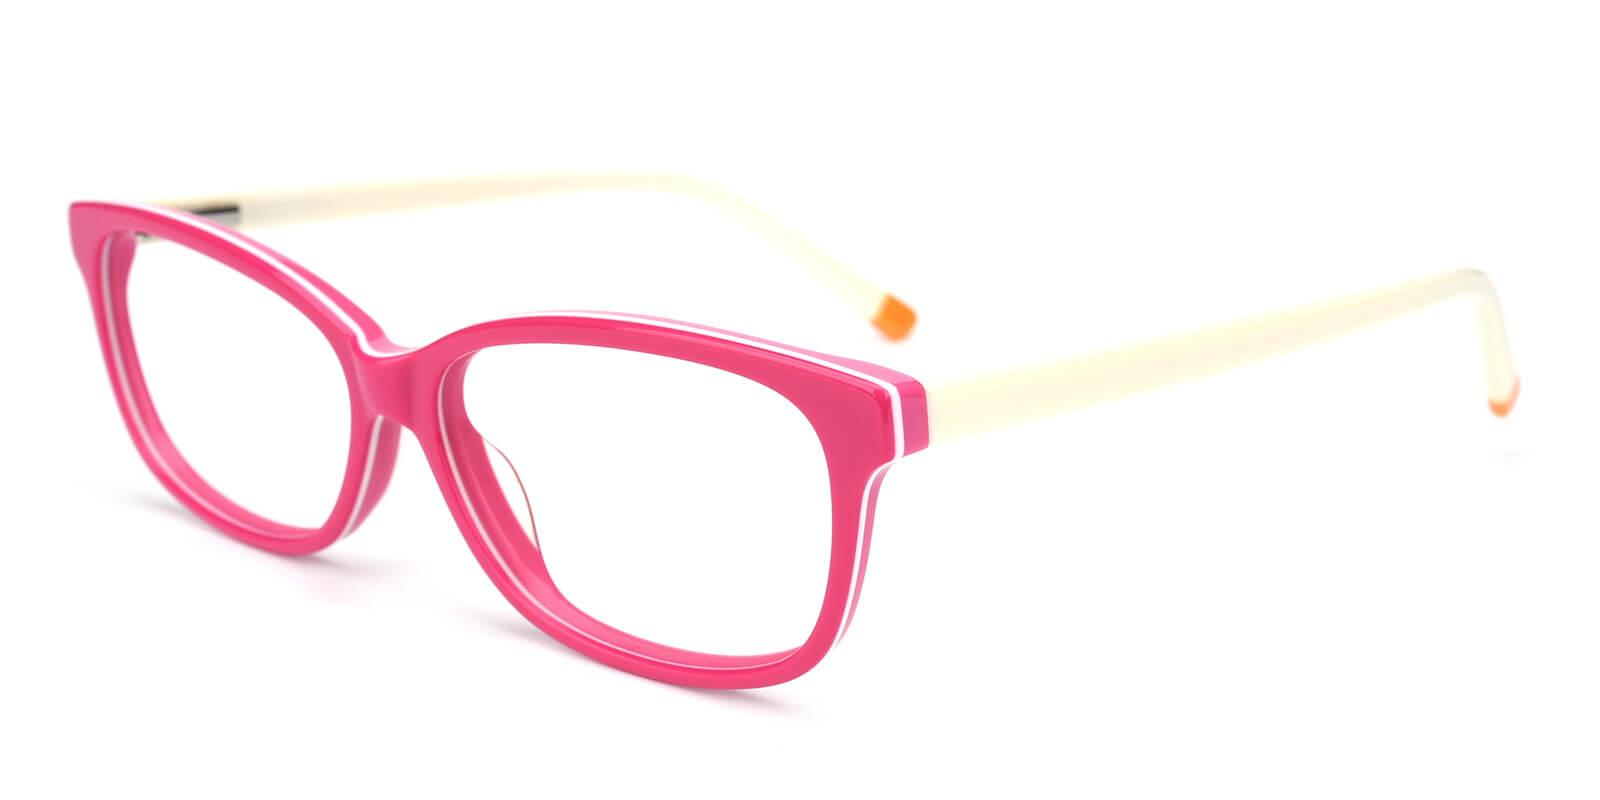 Zion-Pink-Cat-Acetate-Eyeglasses-additional1